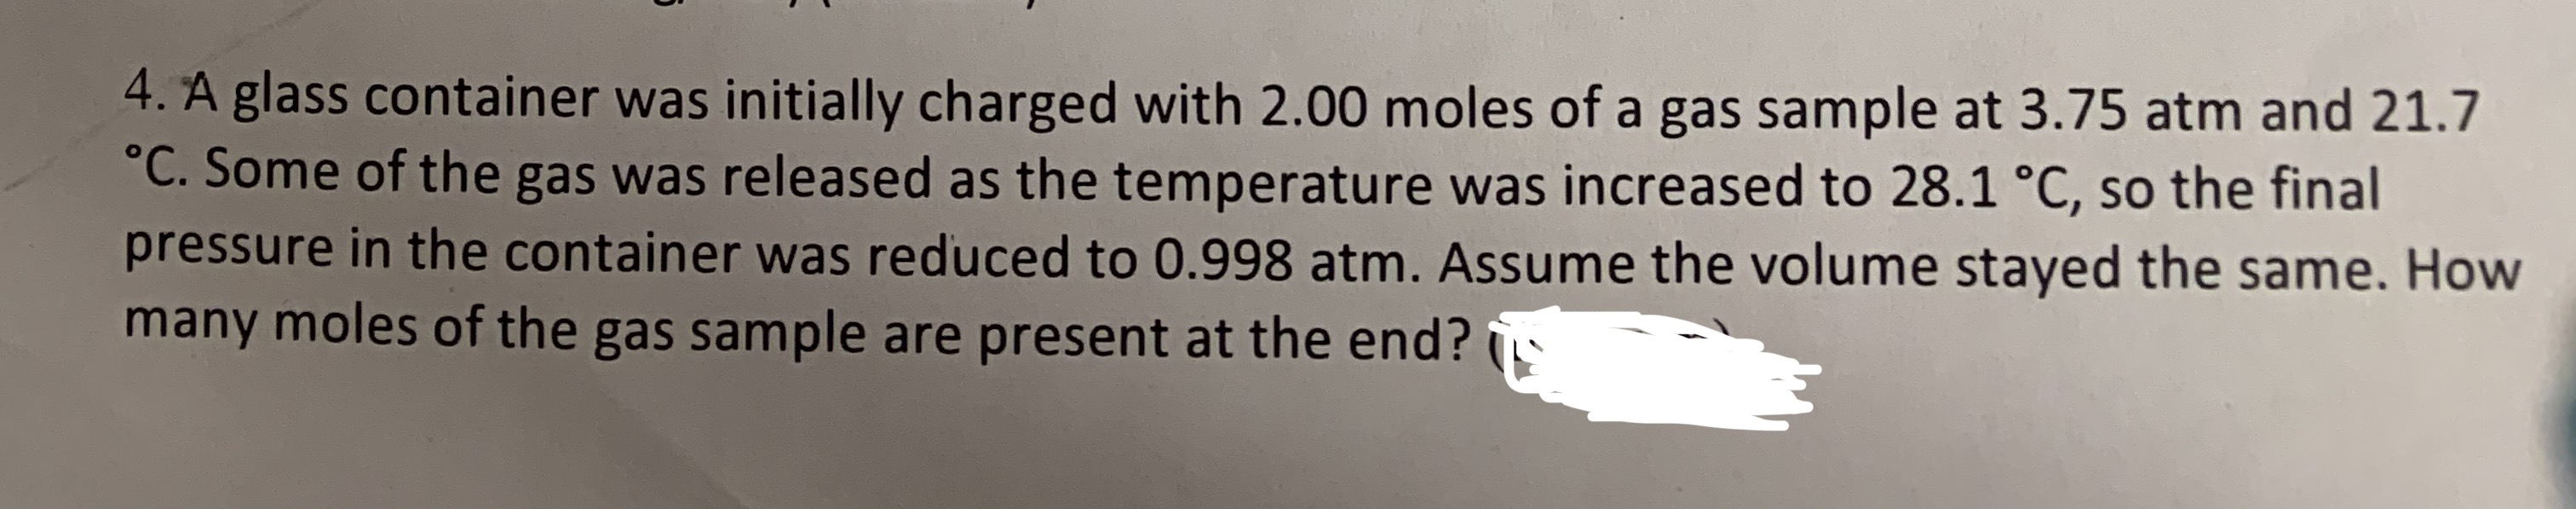 4. A glass container was initially charged with 2.00 moles of a gas sample at 3.75 atm and 21.7 °C. Some of the gas was released as the temperature was increased to 28.1 °C, so the final pressure in the container was reduced to 0.998 atm. Assume the volume stayed the same. How many moles of the gas sample are present at the end?